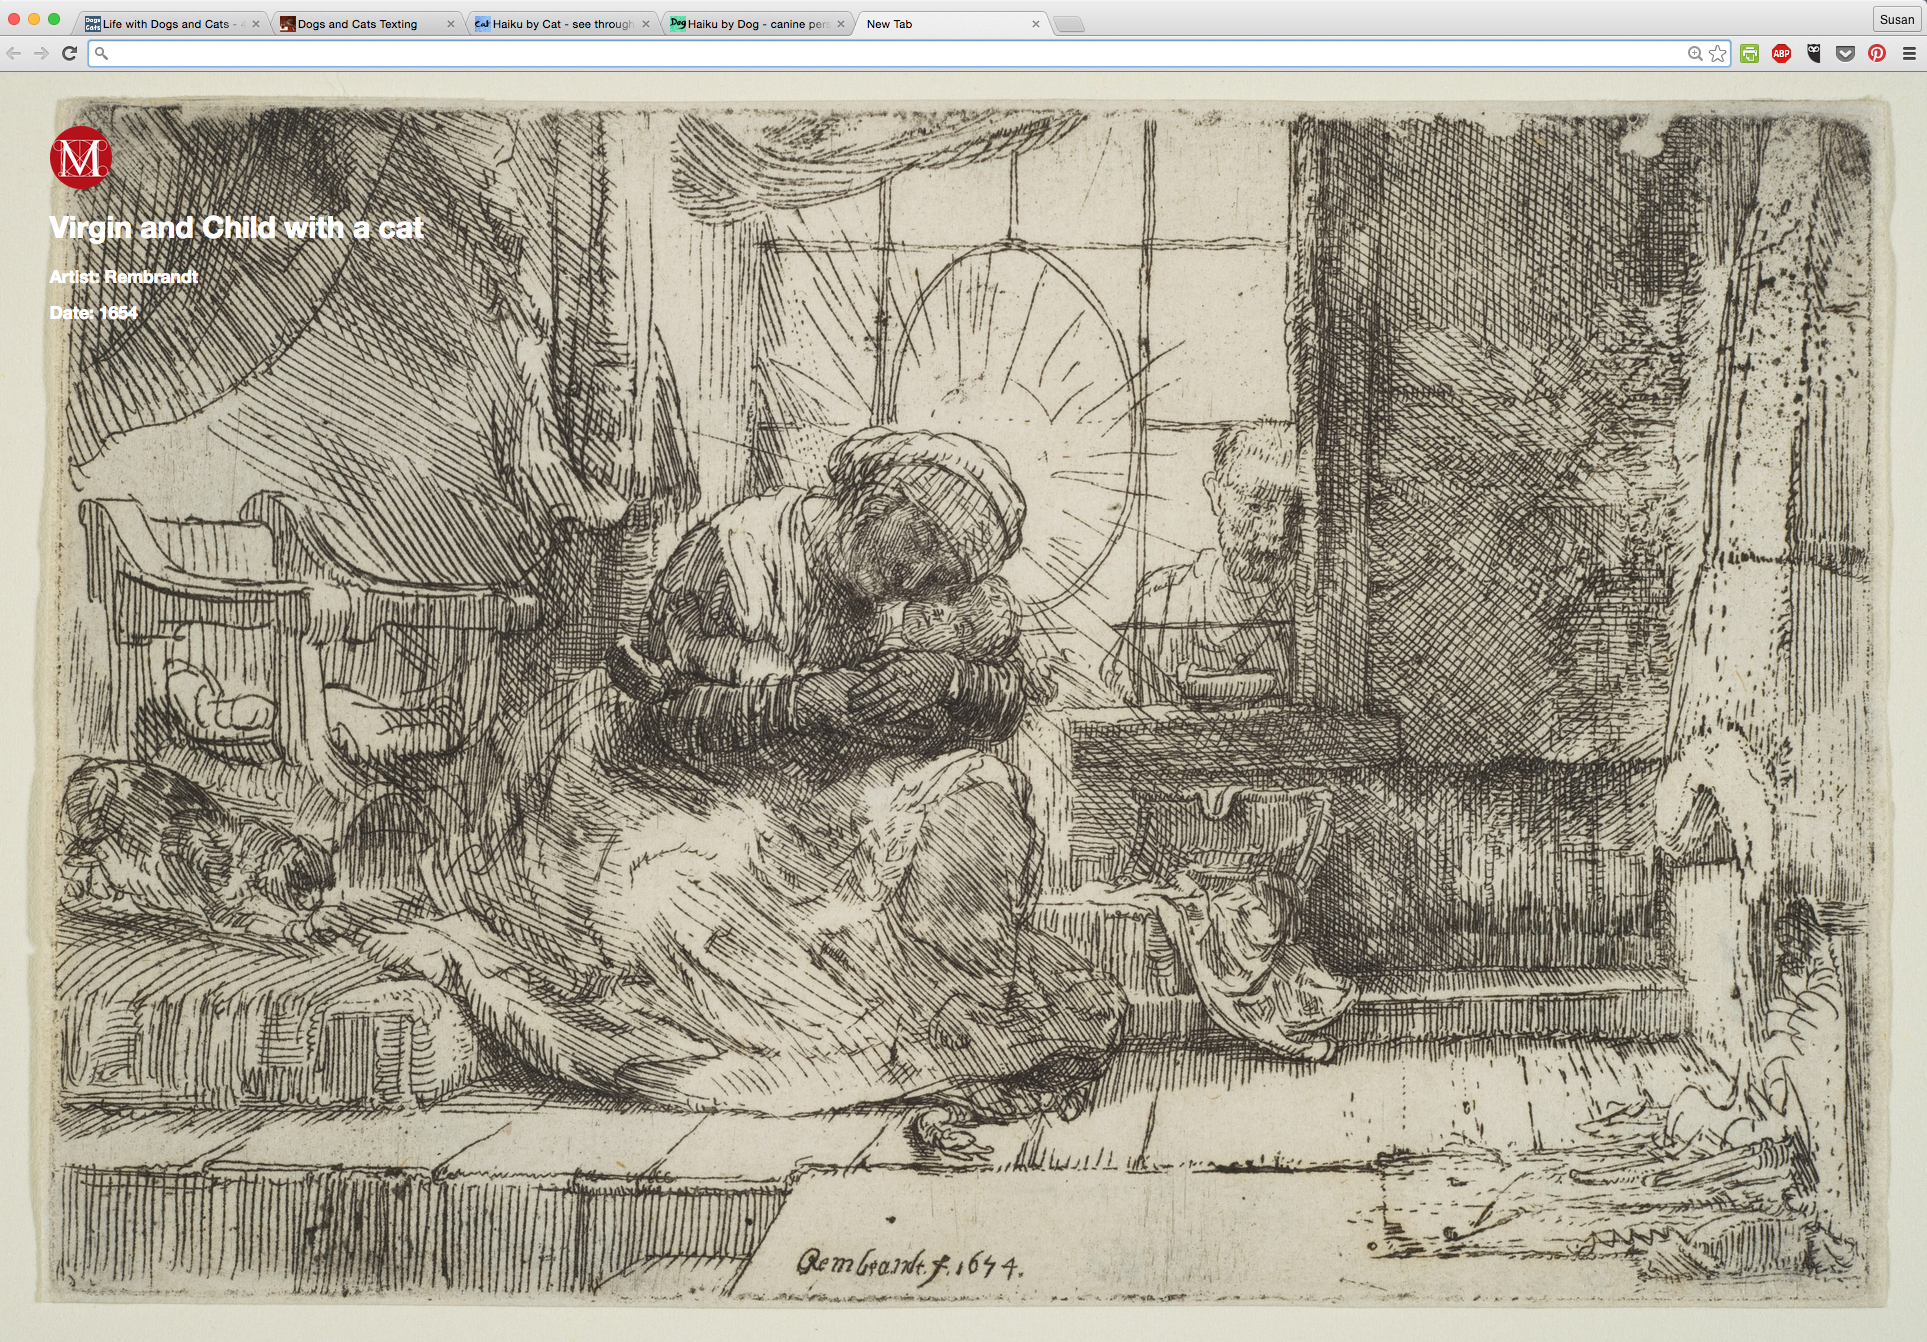 Virgin and Child with a cat by Rembrandt from Meow Met Chrome Extension.